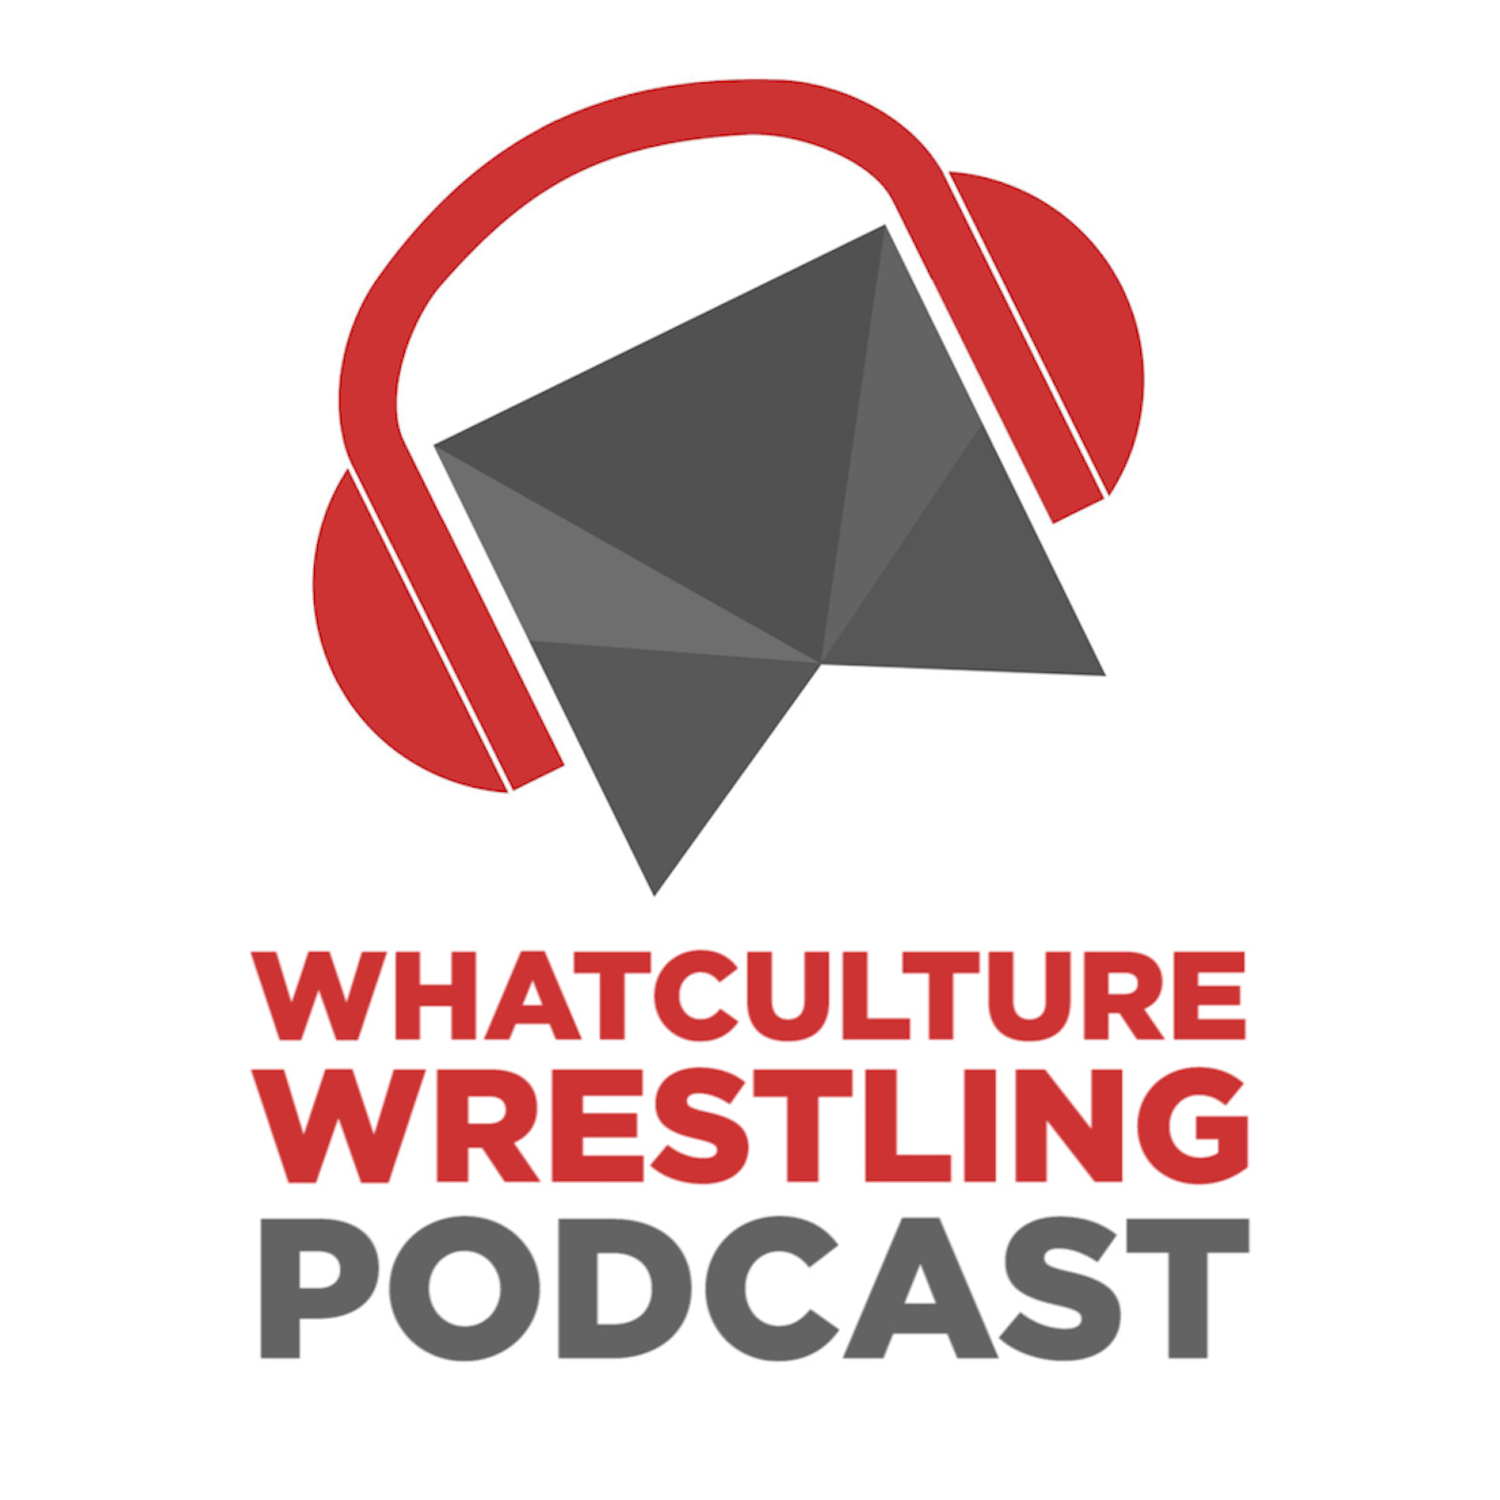 WhatCulture Wrestling